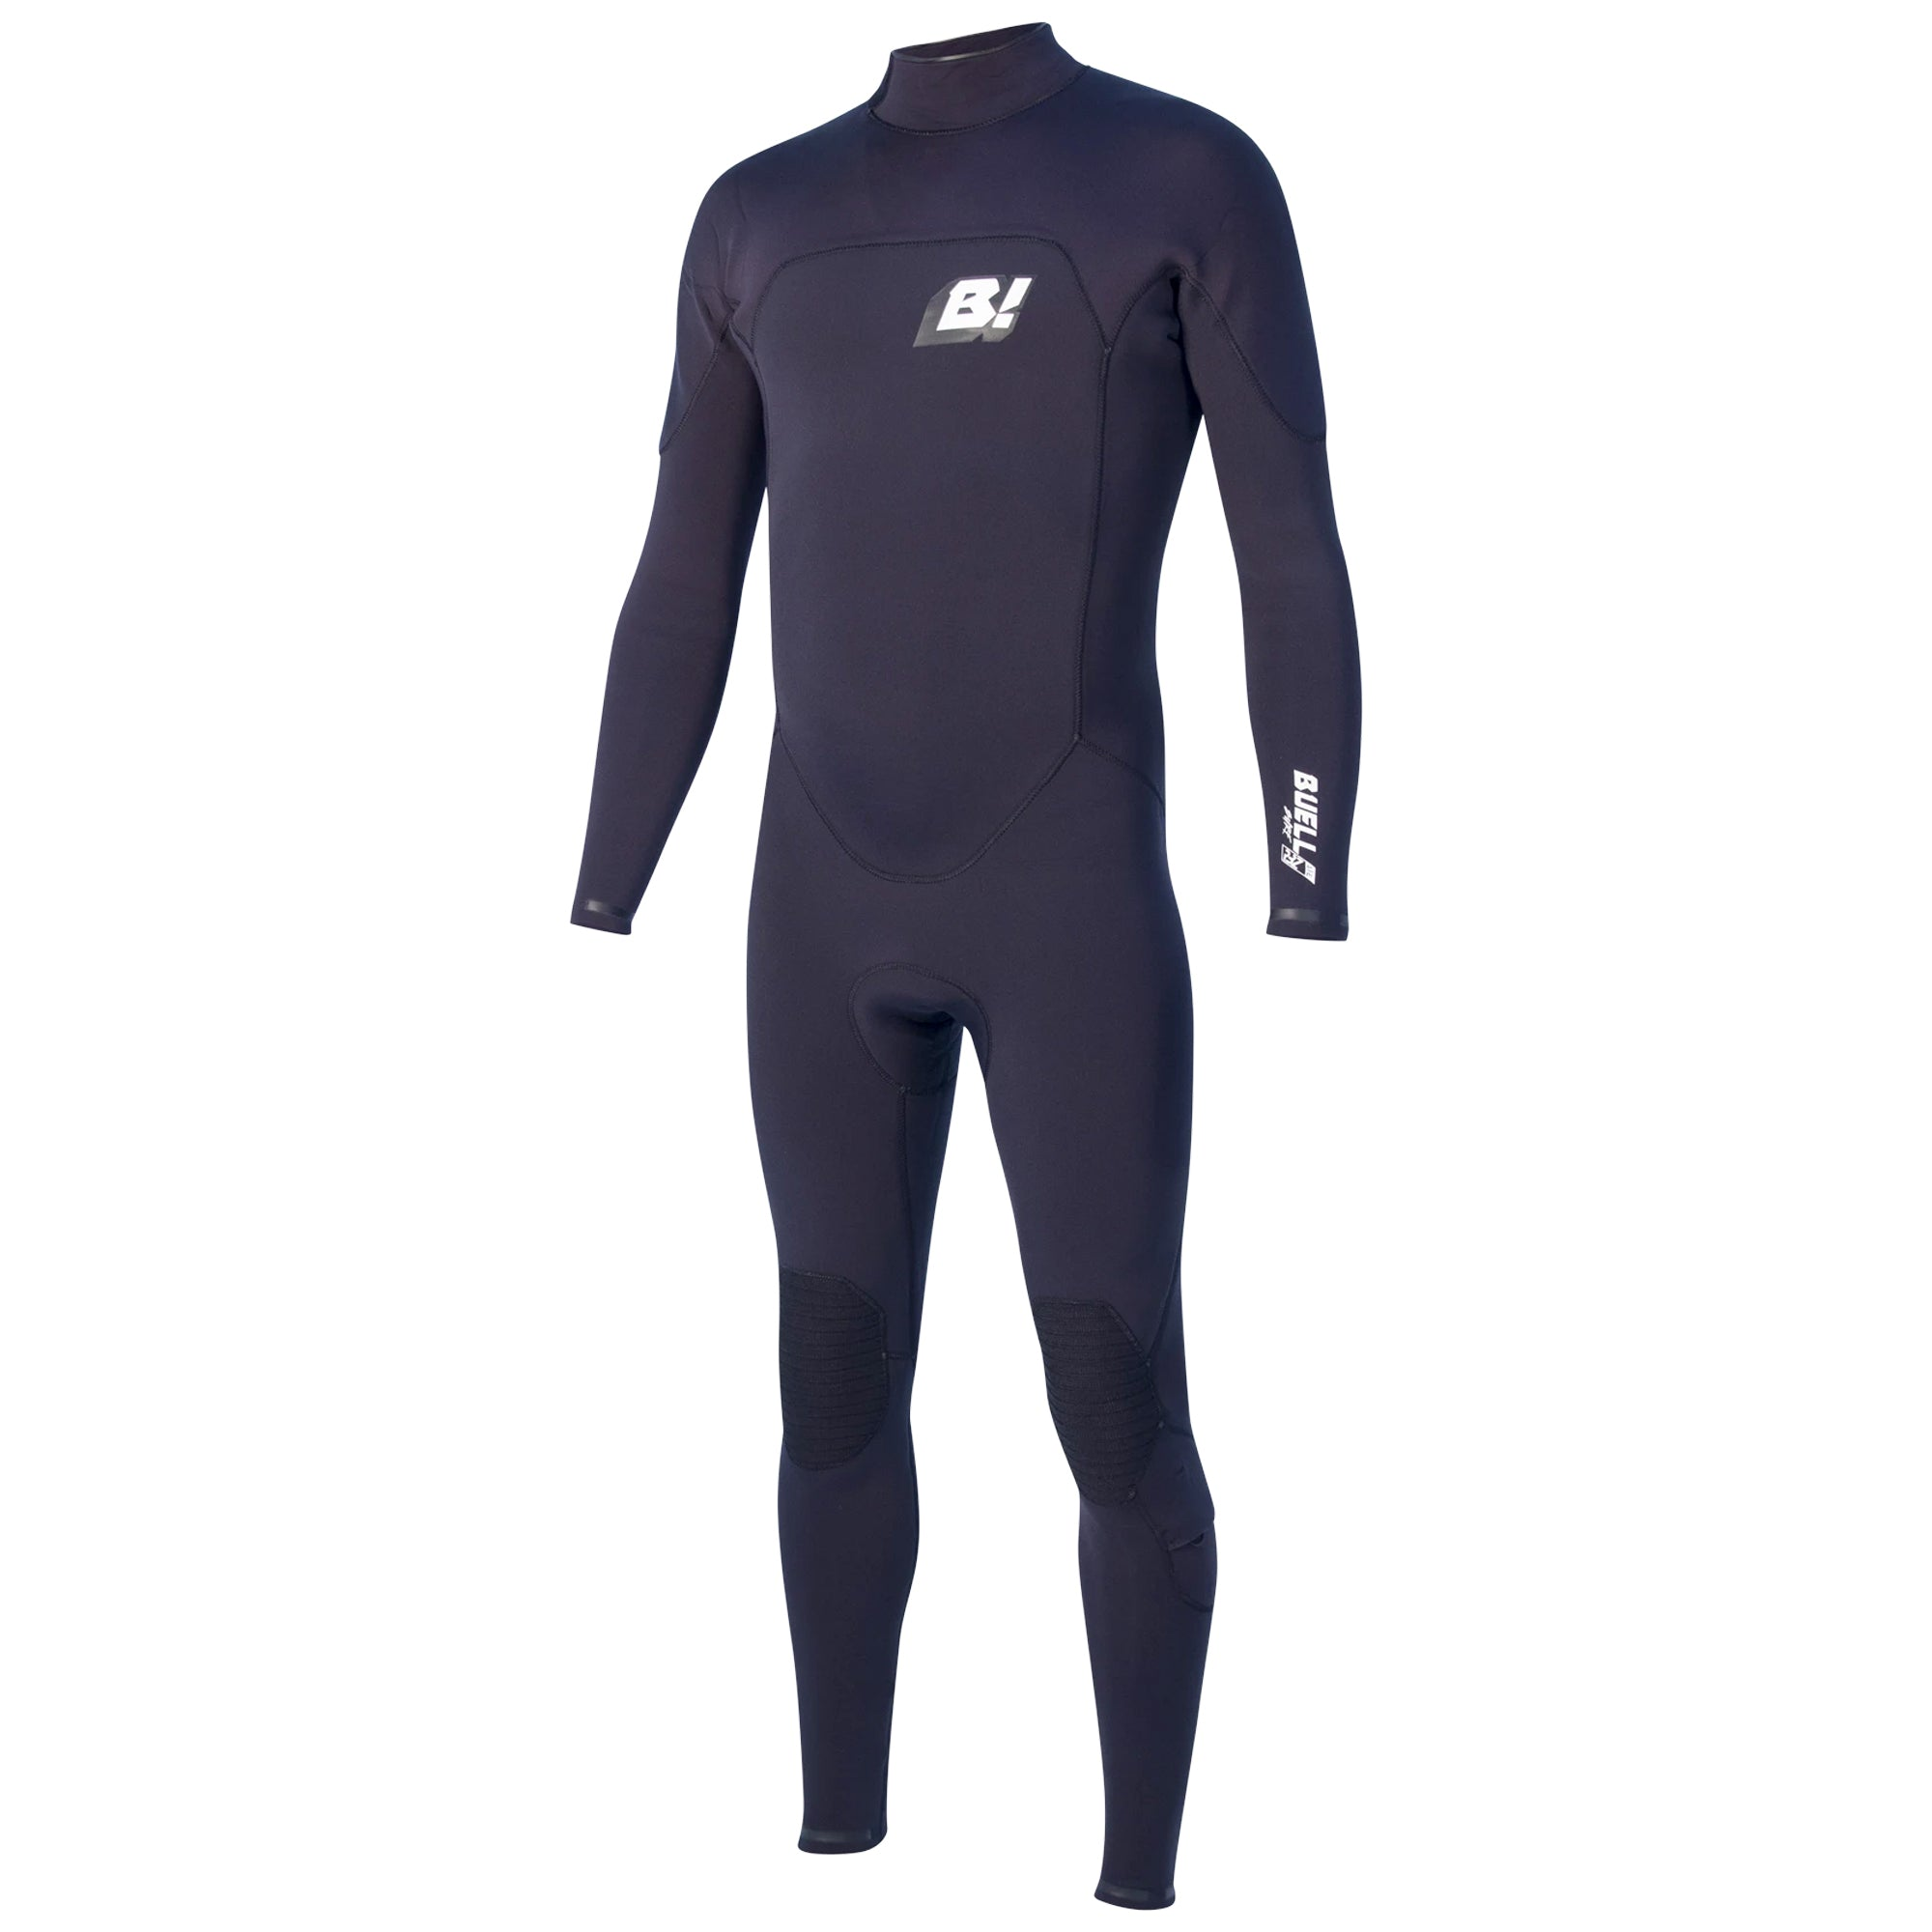 Buell RBZ Stealth Mode 3/2 Back-Zip Men's Fullsuit Wetsuit